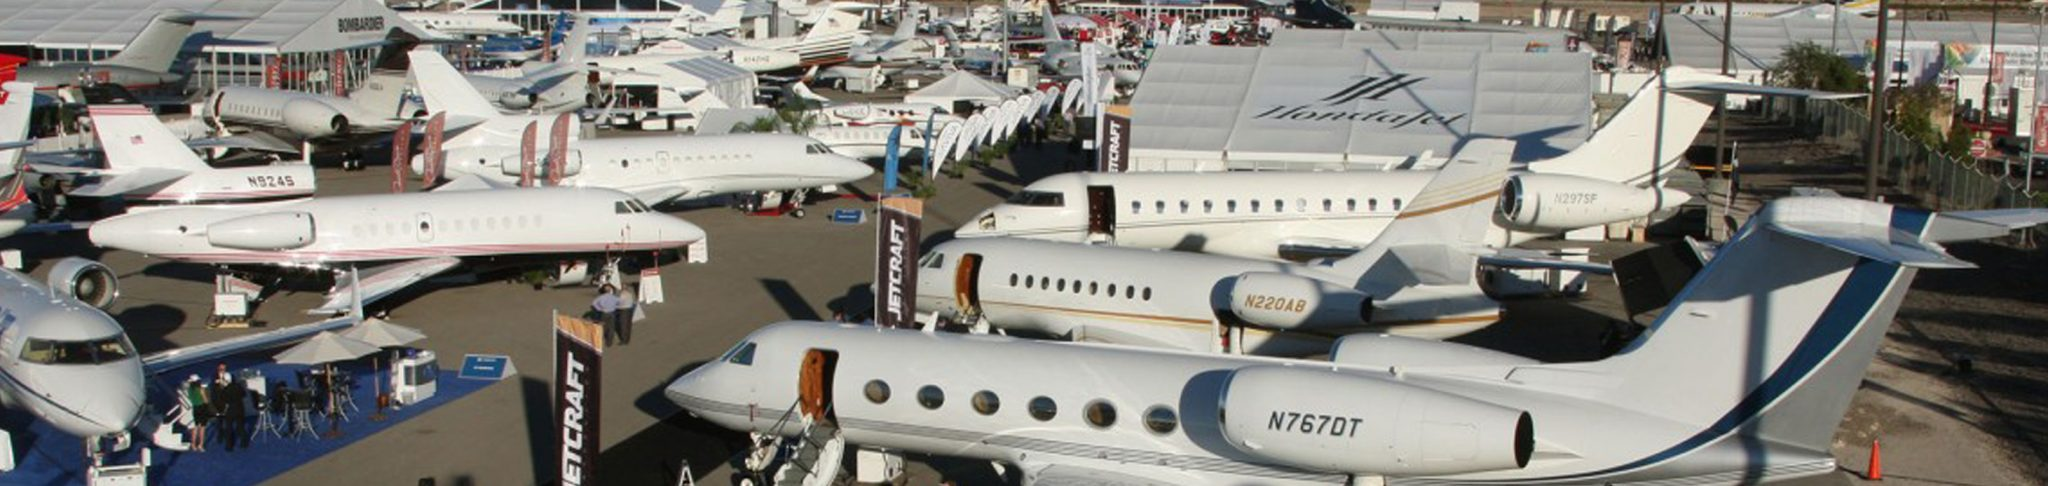 aero specialties represent powervamp at nbaa 2016 powervamp nbaa bace will feature over 1 100 indoor exhibitors at the orange county convention center occc two static displays of aircraft one inside on the